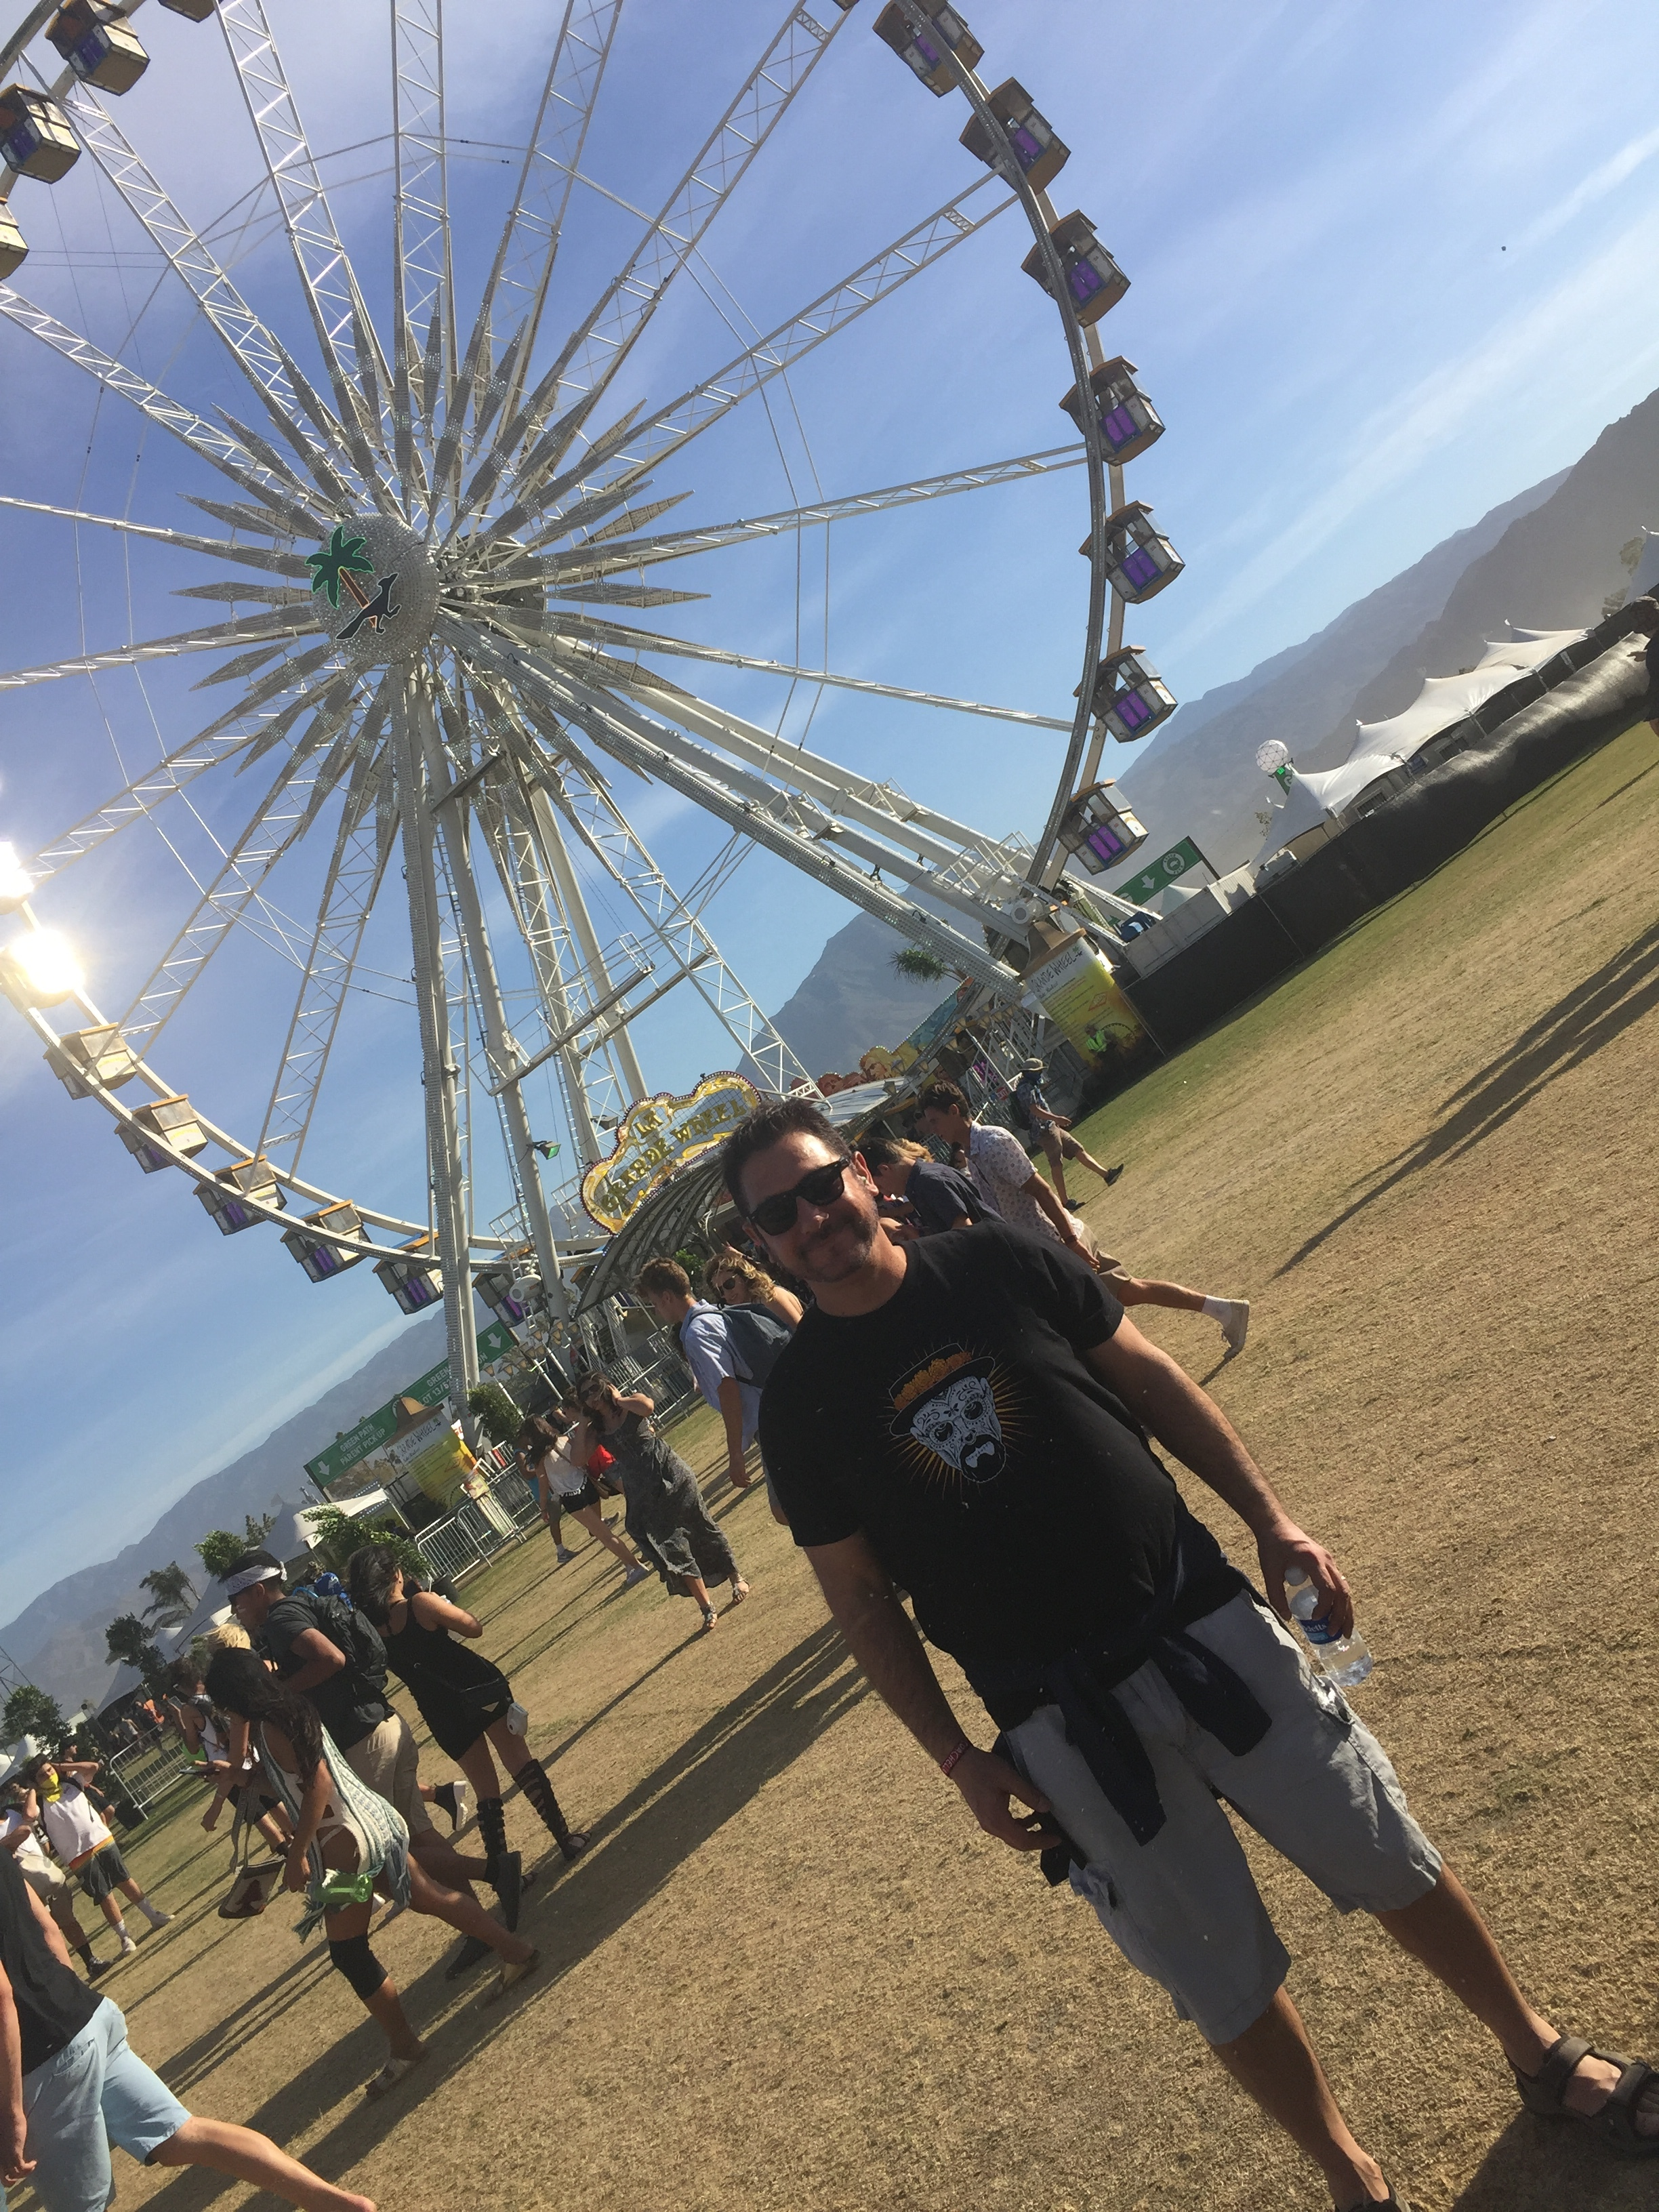 VisionBroadcast Blog (yours truly) @Coachella 2016!